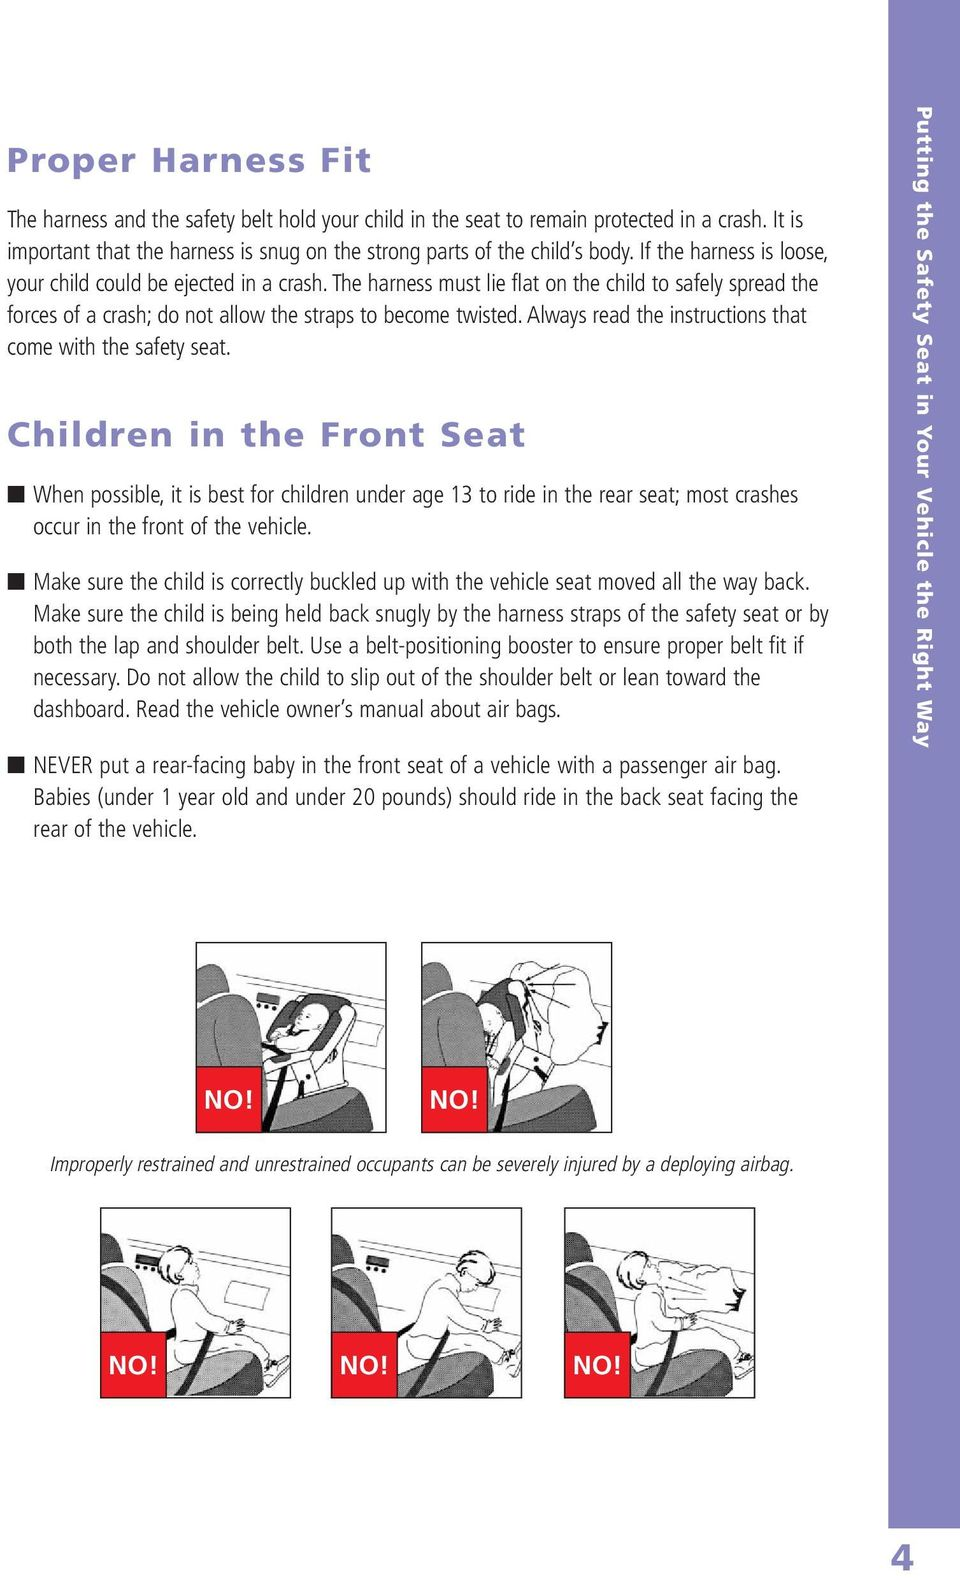 Always read the instructions that come with the safety seat.